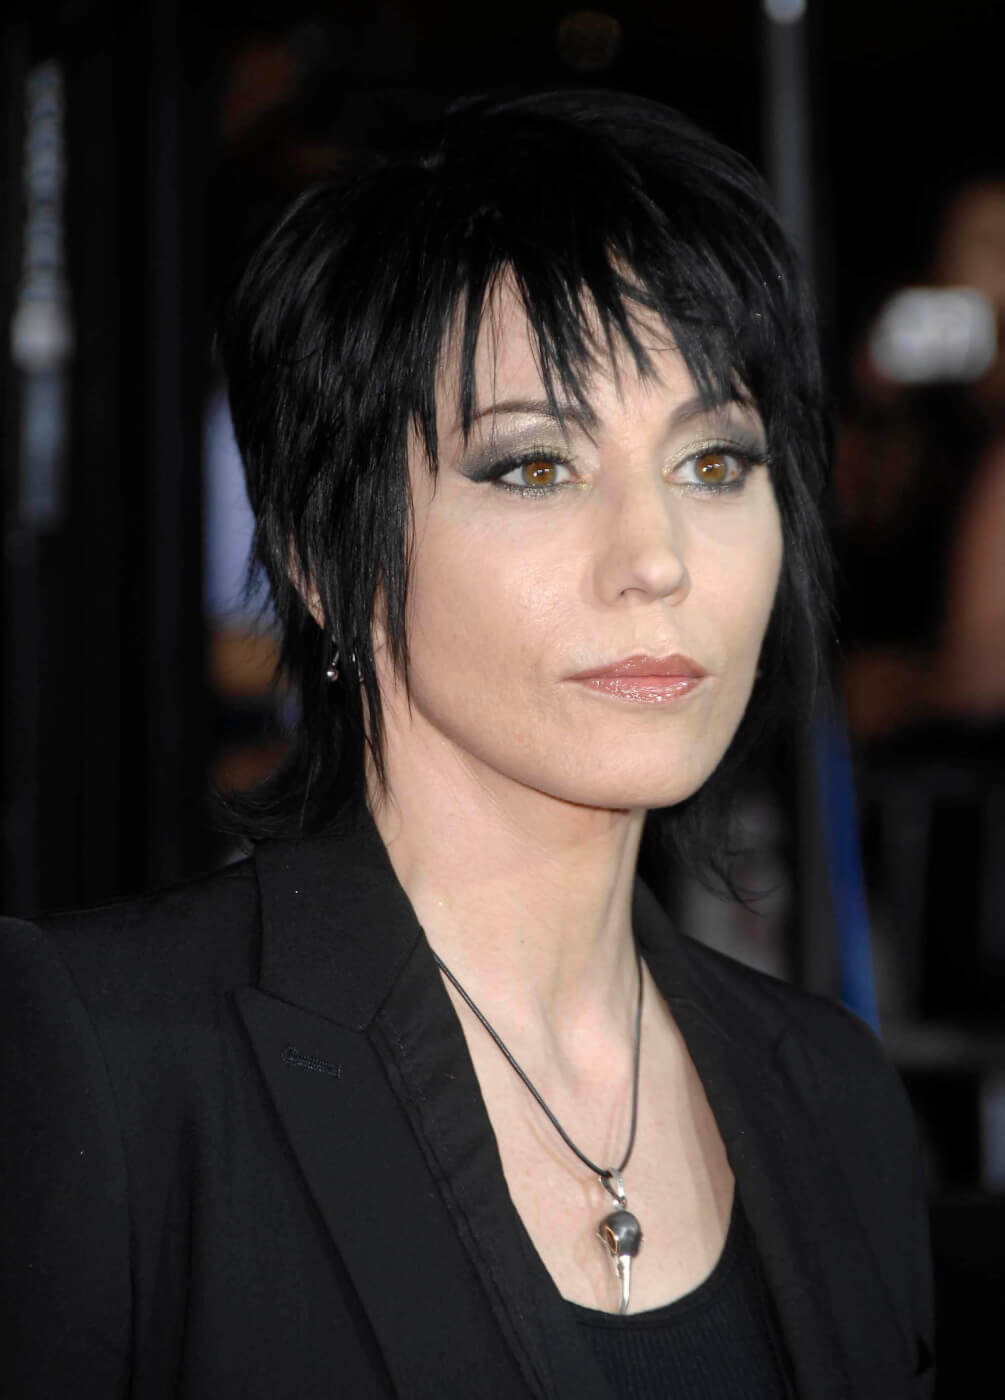 The 62-year old daughter of father (?) and mother(?) Joan Jett in 2021 photo. Joan Jett earned a  million dollar salary - leaving the net worth at  million in 2021